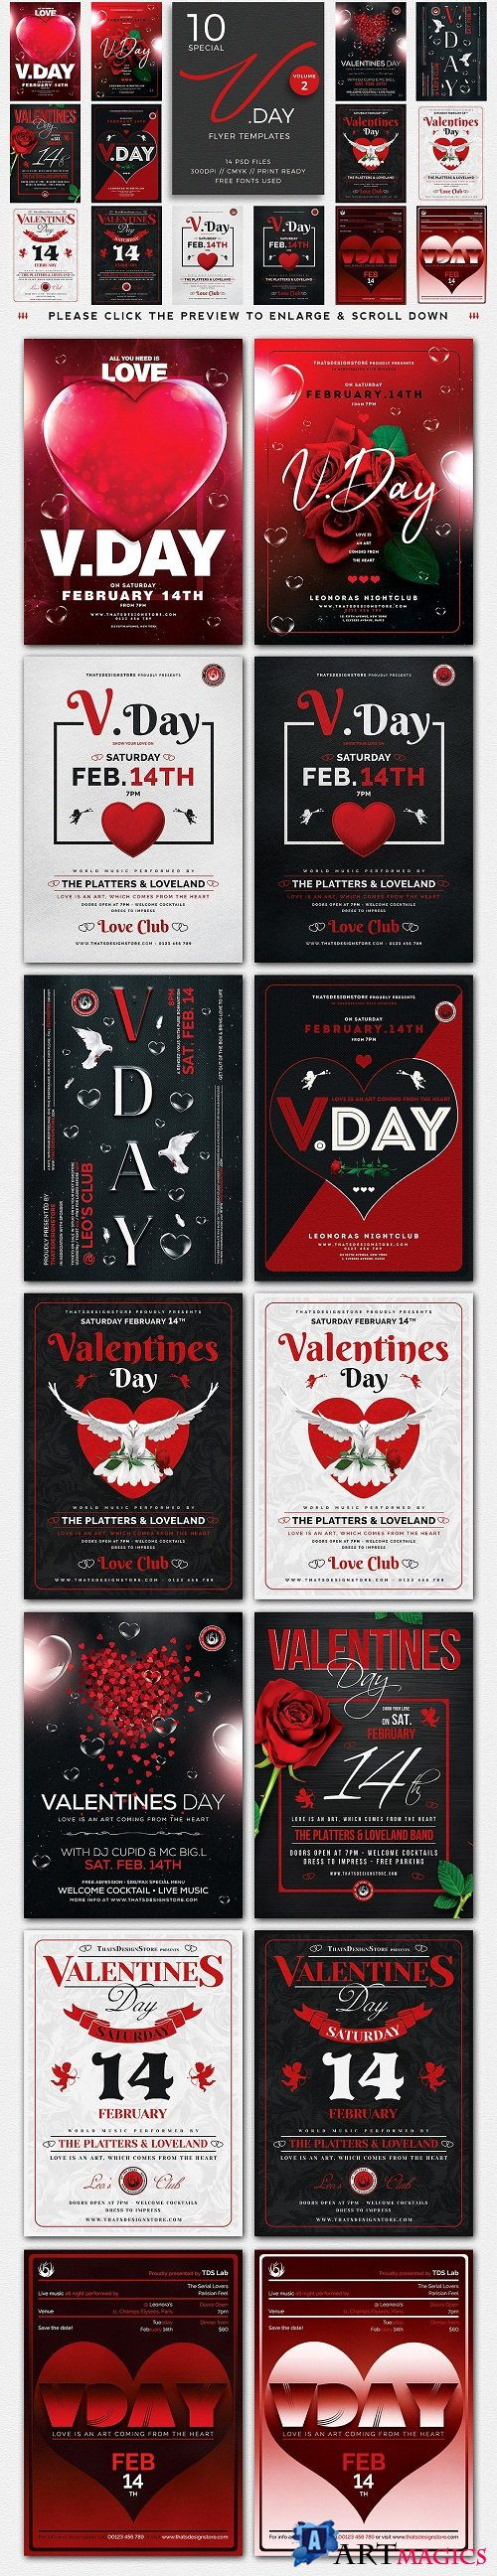 10 Valentines Day Flyer Bundle V2 - 3436289